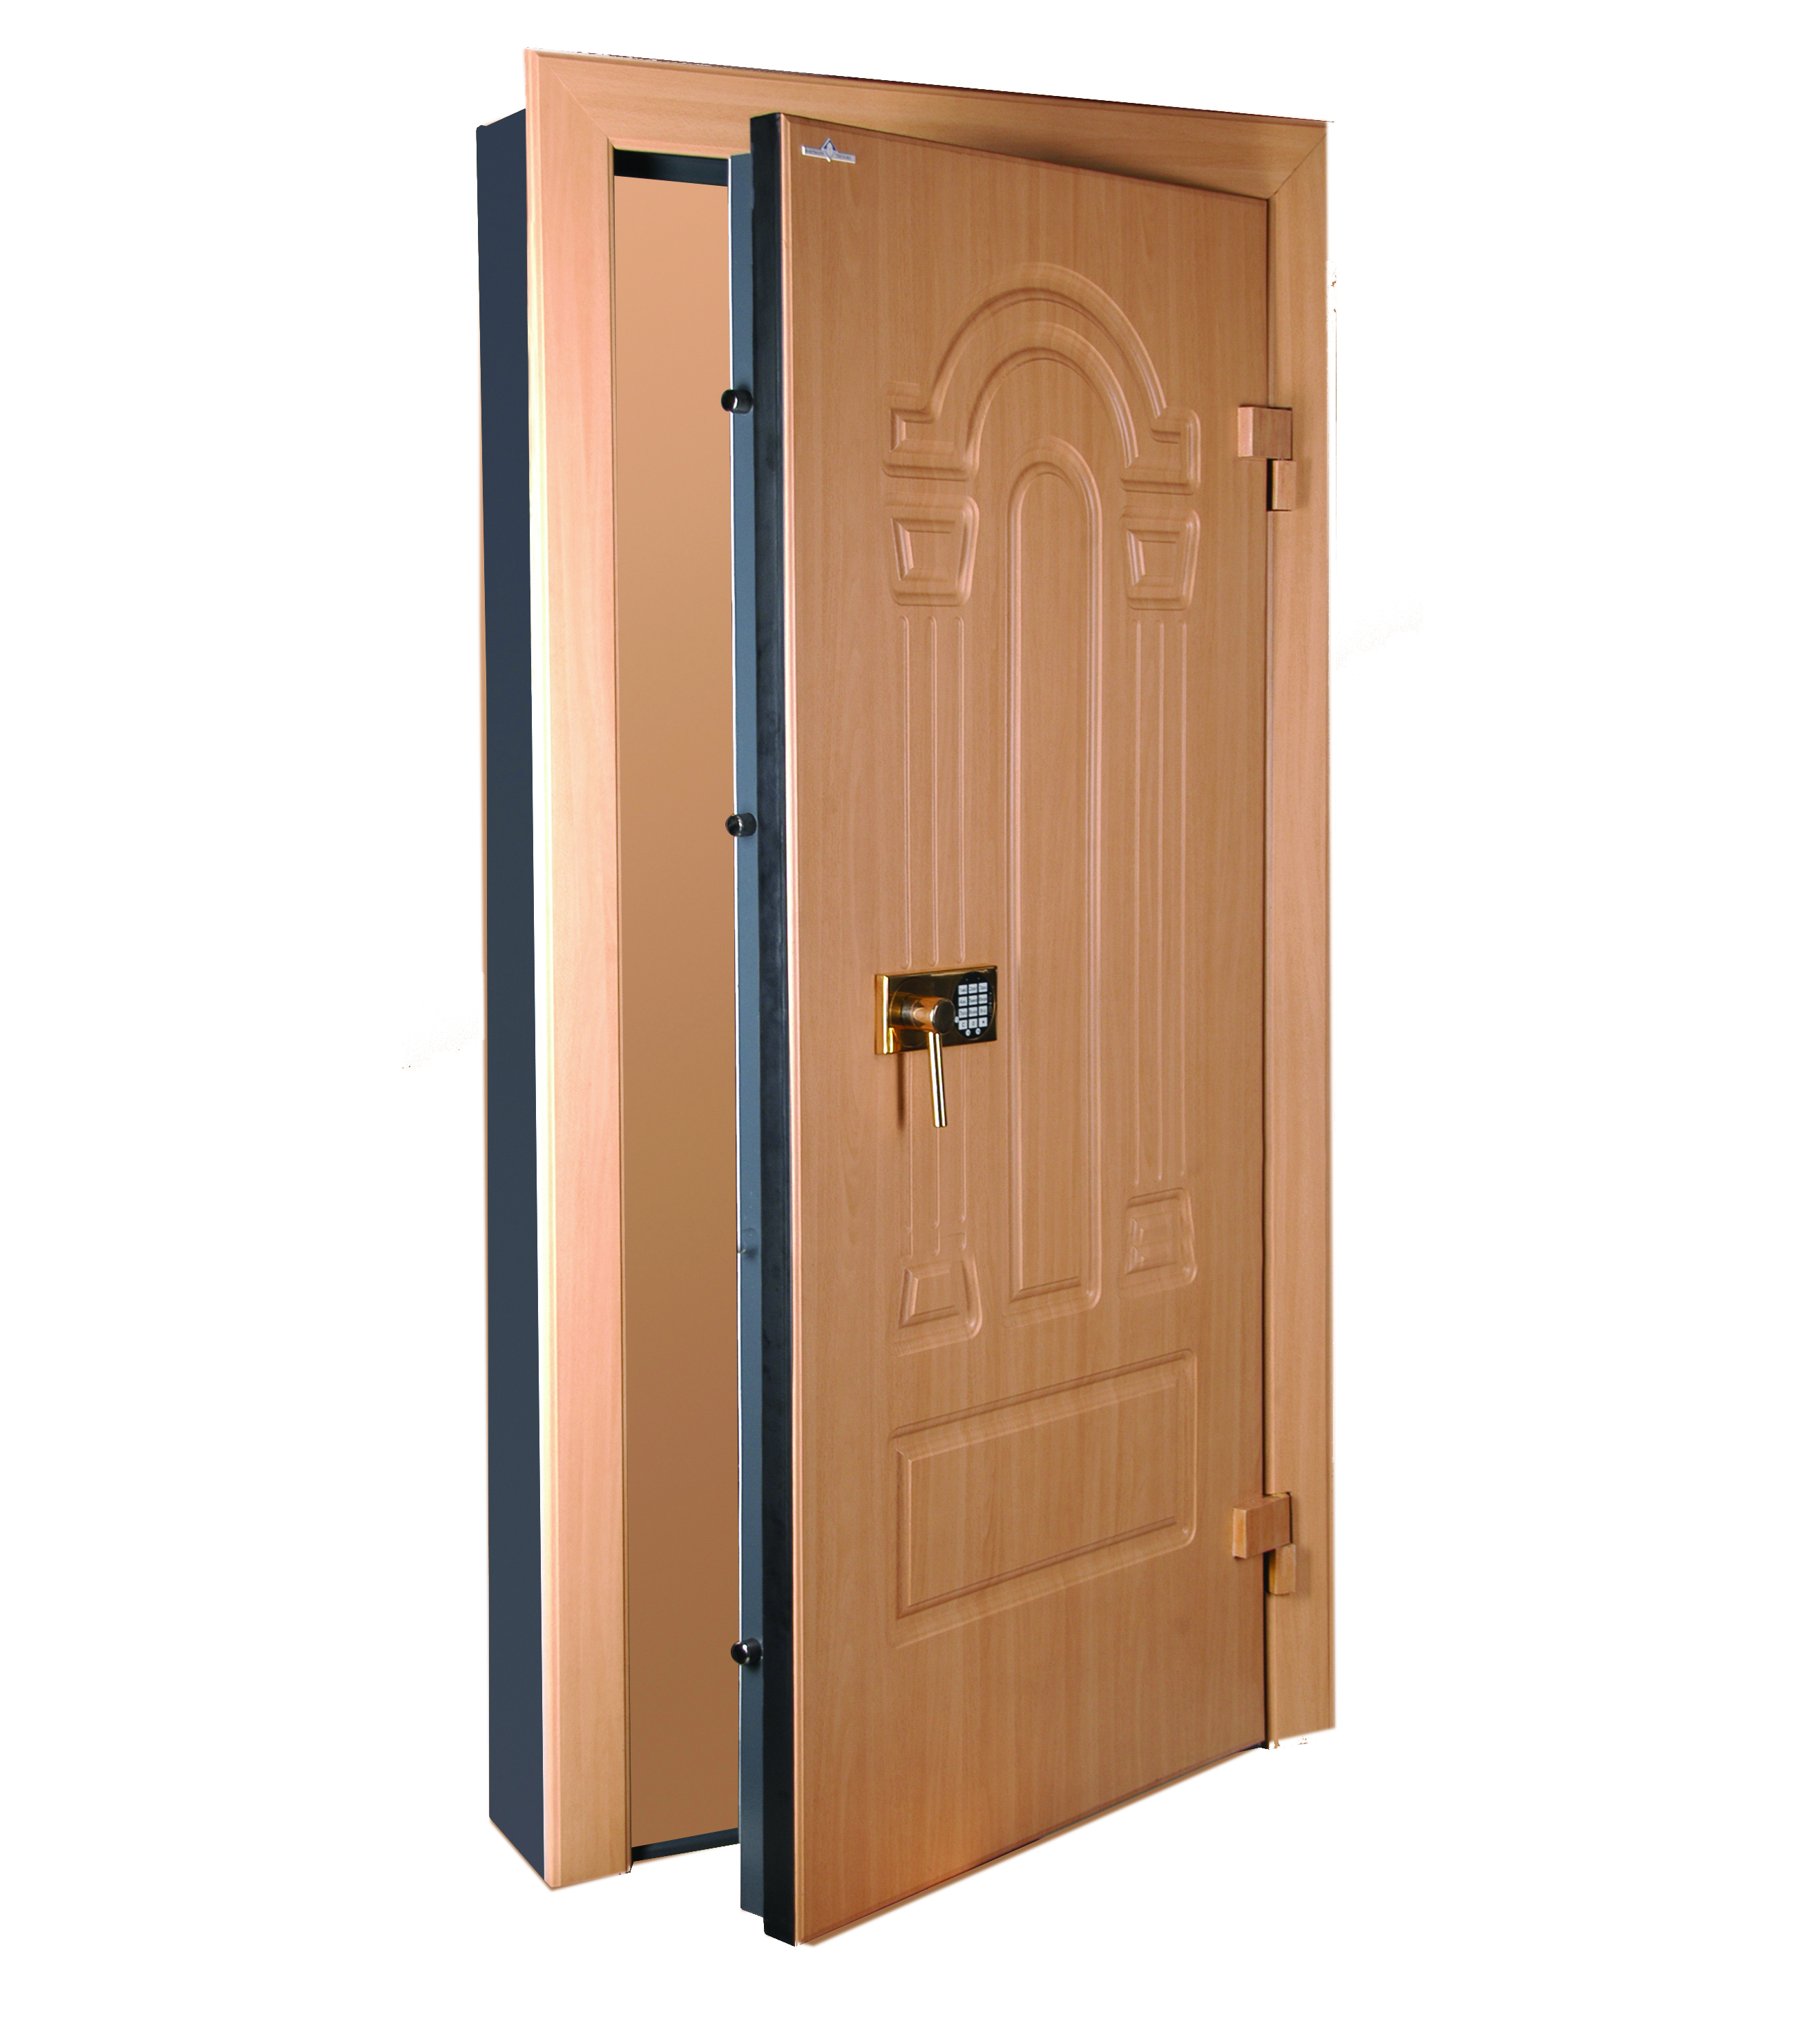 Strongroom Doors - HPTV Series  sc 1 st  Hartmann Tresore Middle East LLC Dubai UAE & Room Safe in Dubai UAE | Strongroom Doors with Modular Design